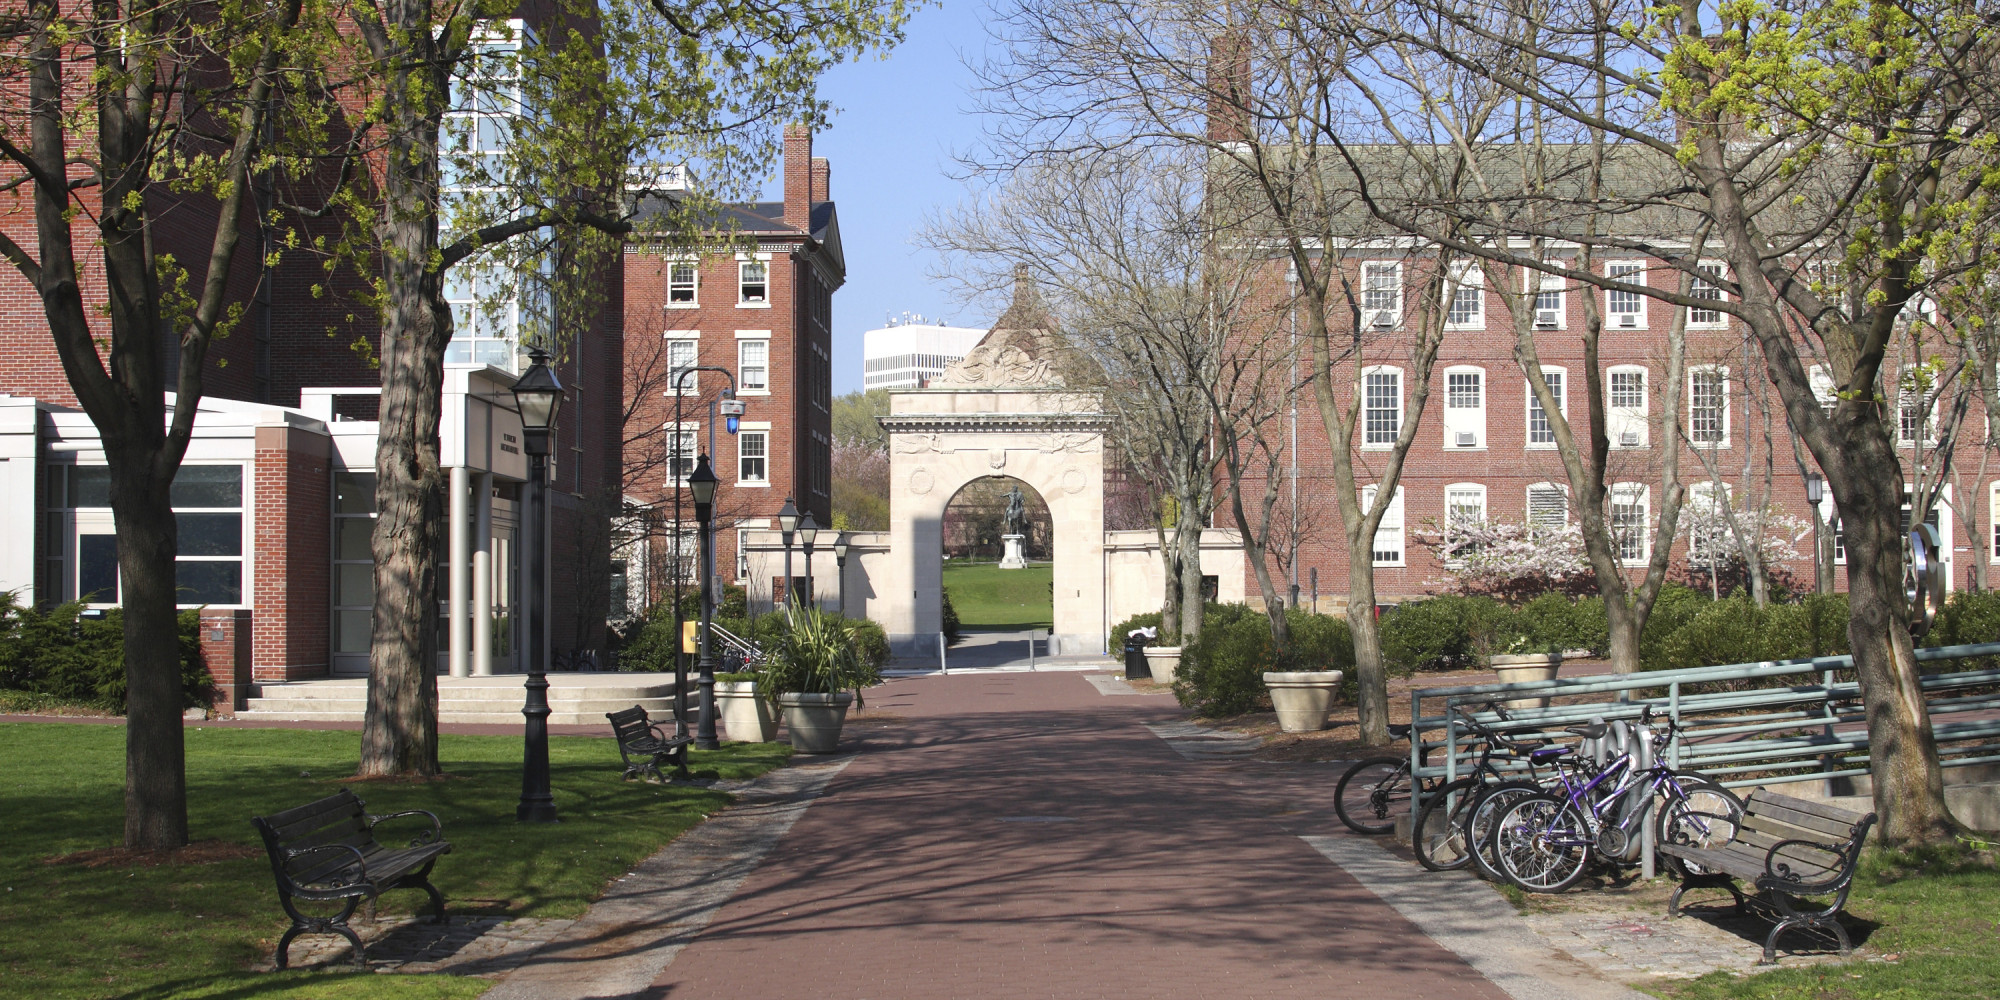 essay about college campus 10 tips for writing the college application essay but parents can help by ensuring schools offer adequate mental health services on campus.